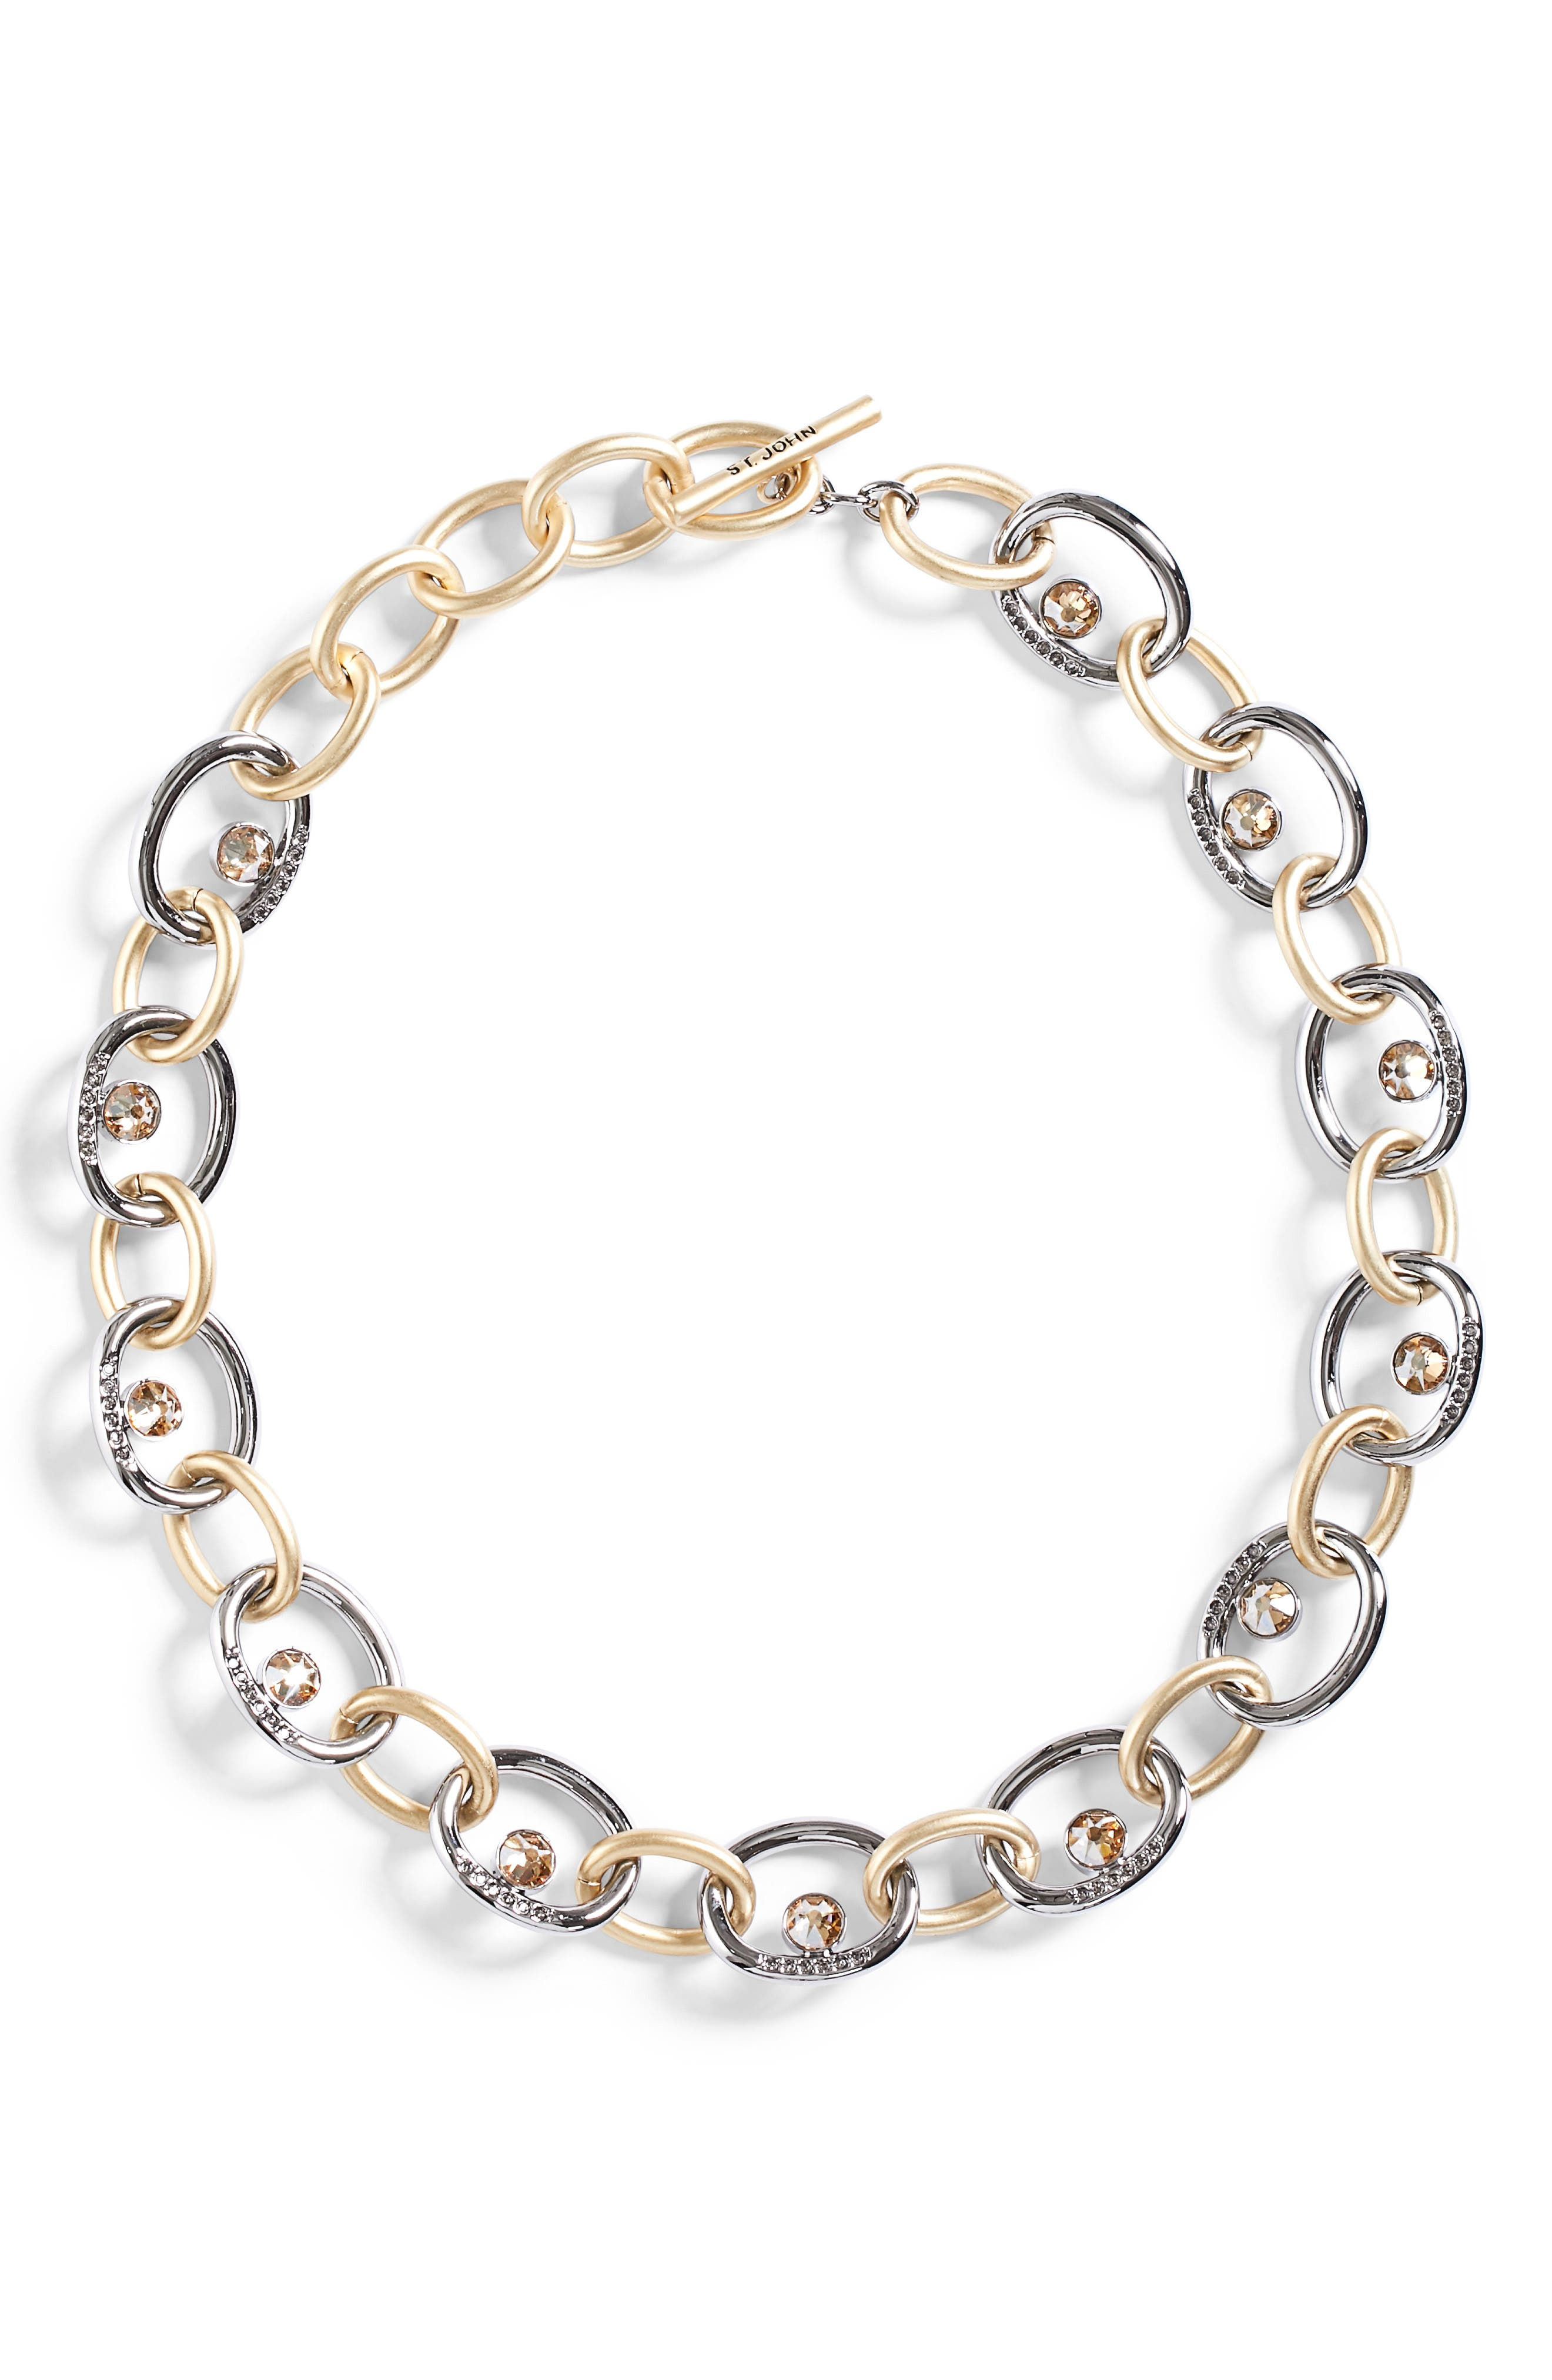 St. John Collection Swarovski Crystal & Metal Chain Necklace